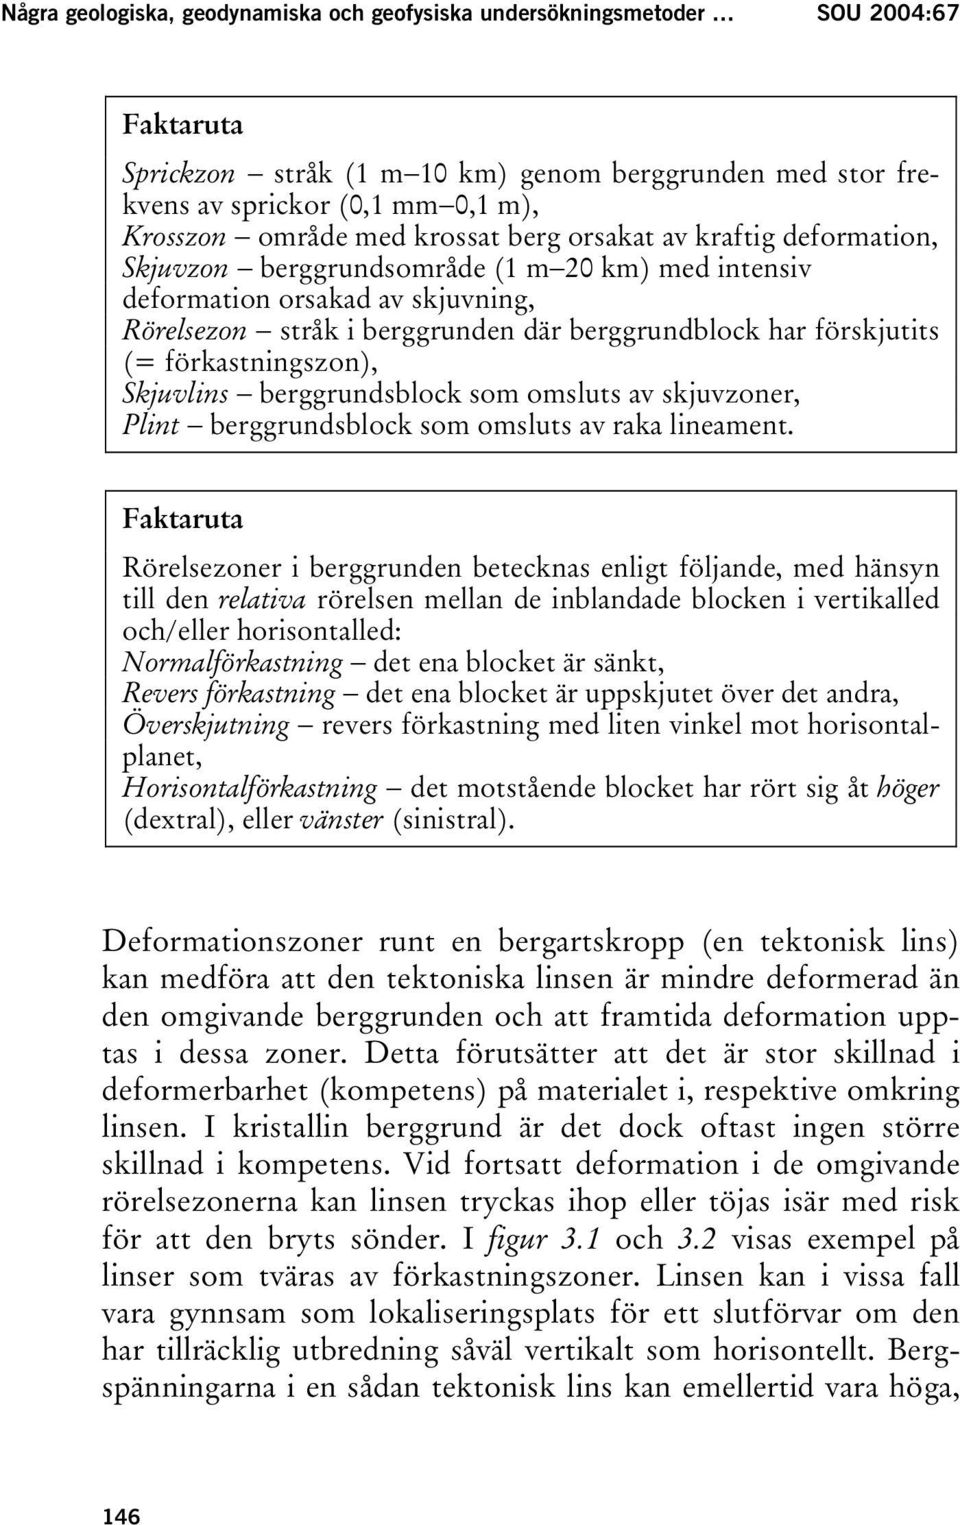 Dating experiment ögon kontakt